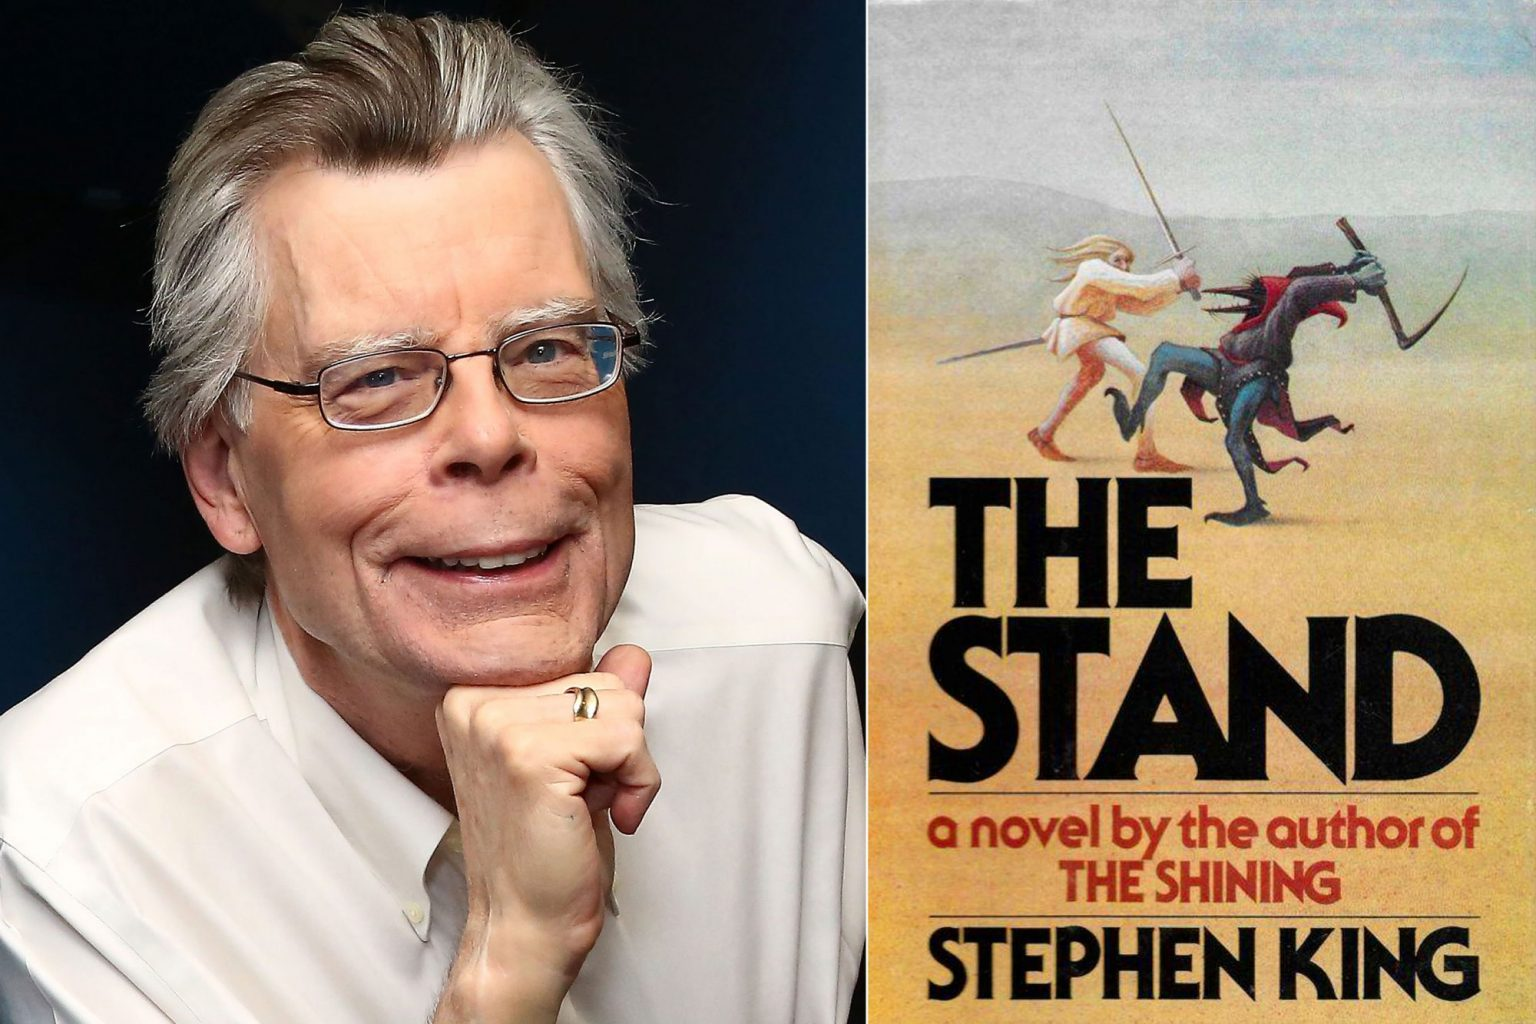 stephen king the stand 1536x1024 1 - واکنش استیون کینگ به مقایسه کرونا ویروس و داستان The Stand